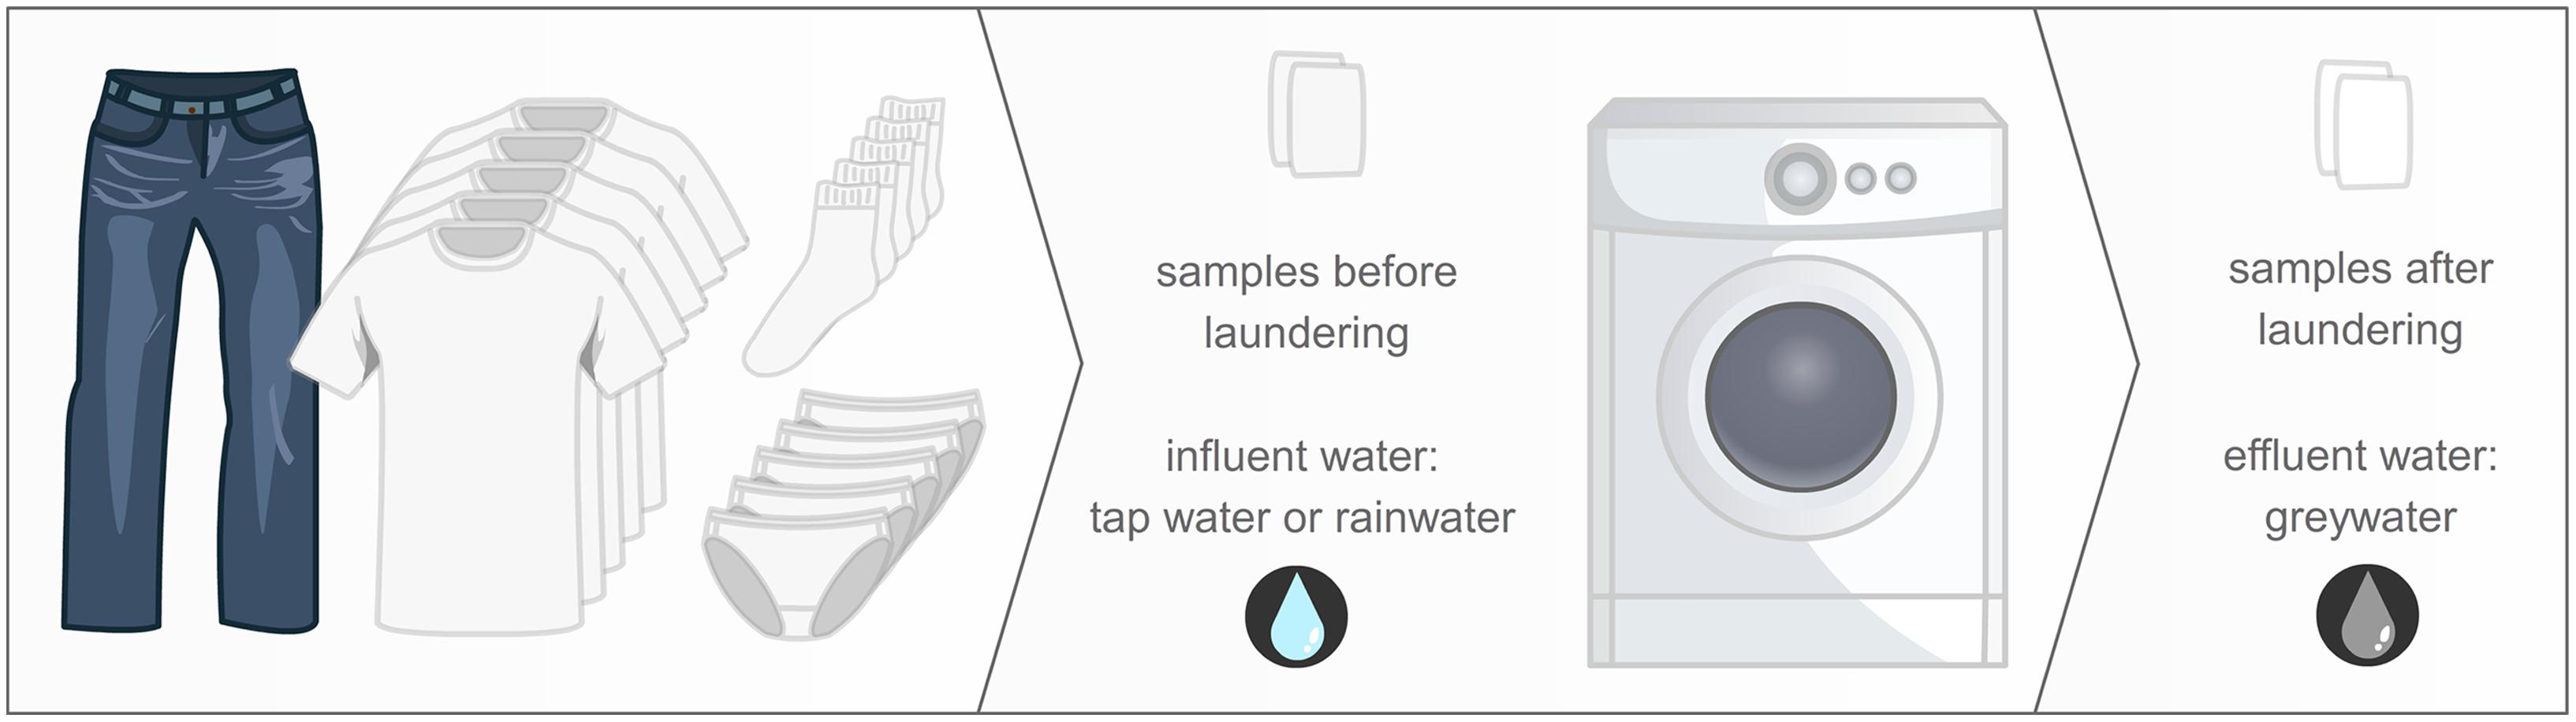 How to wash membrane clothes Means for washing membrane clothes